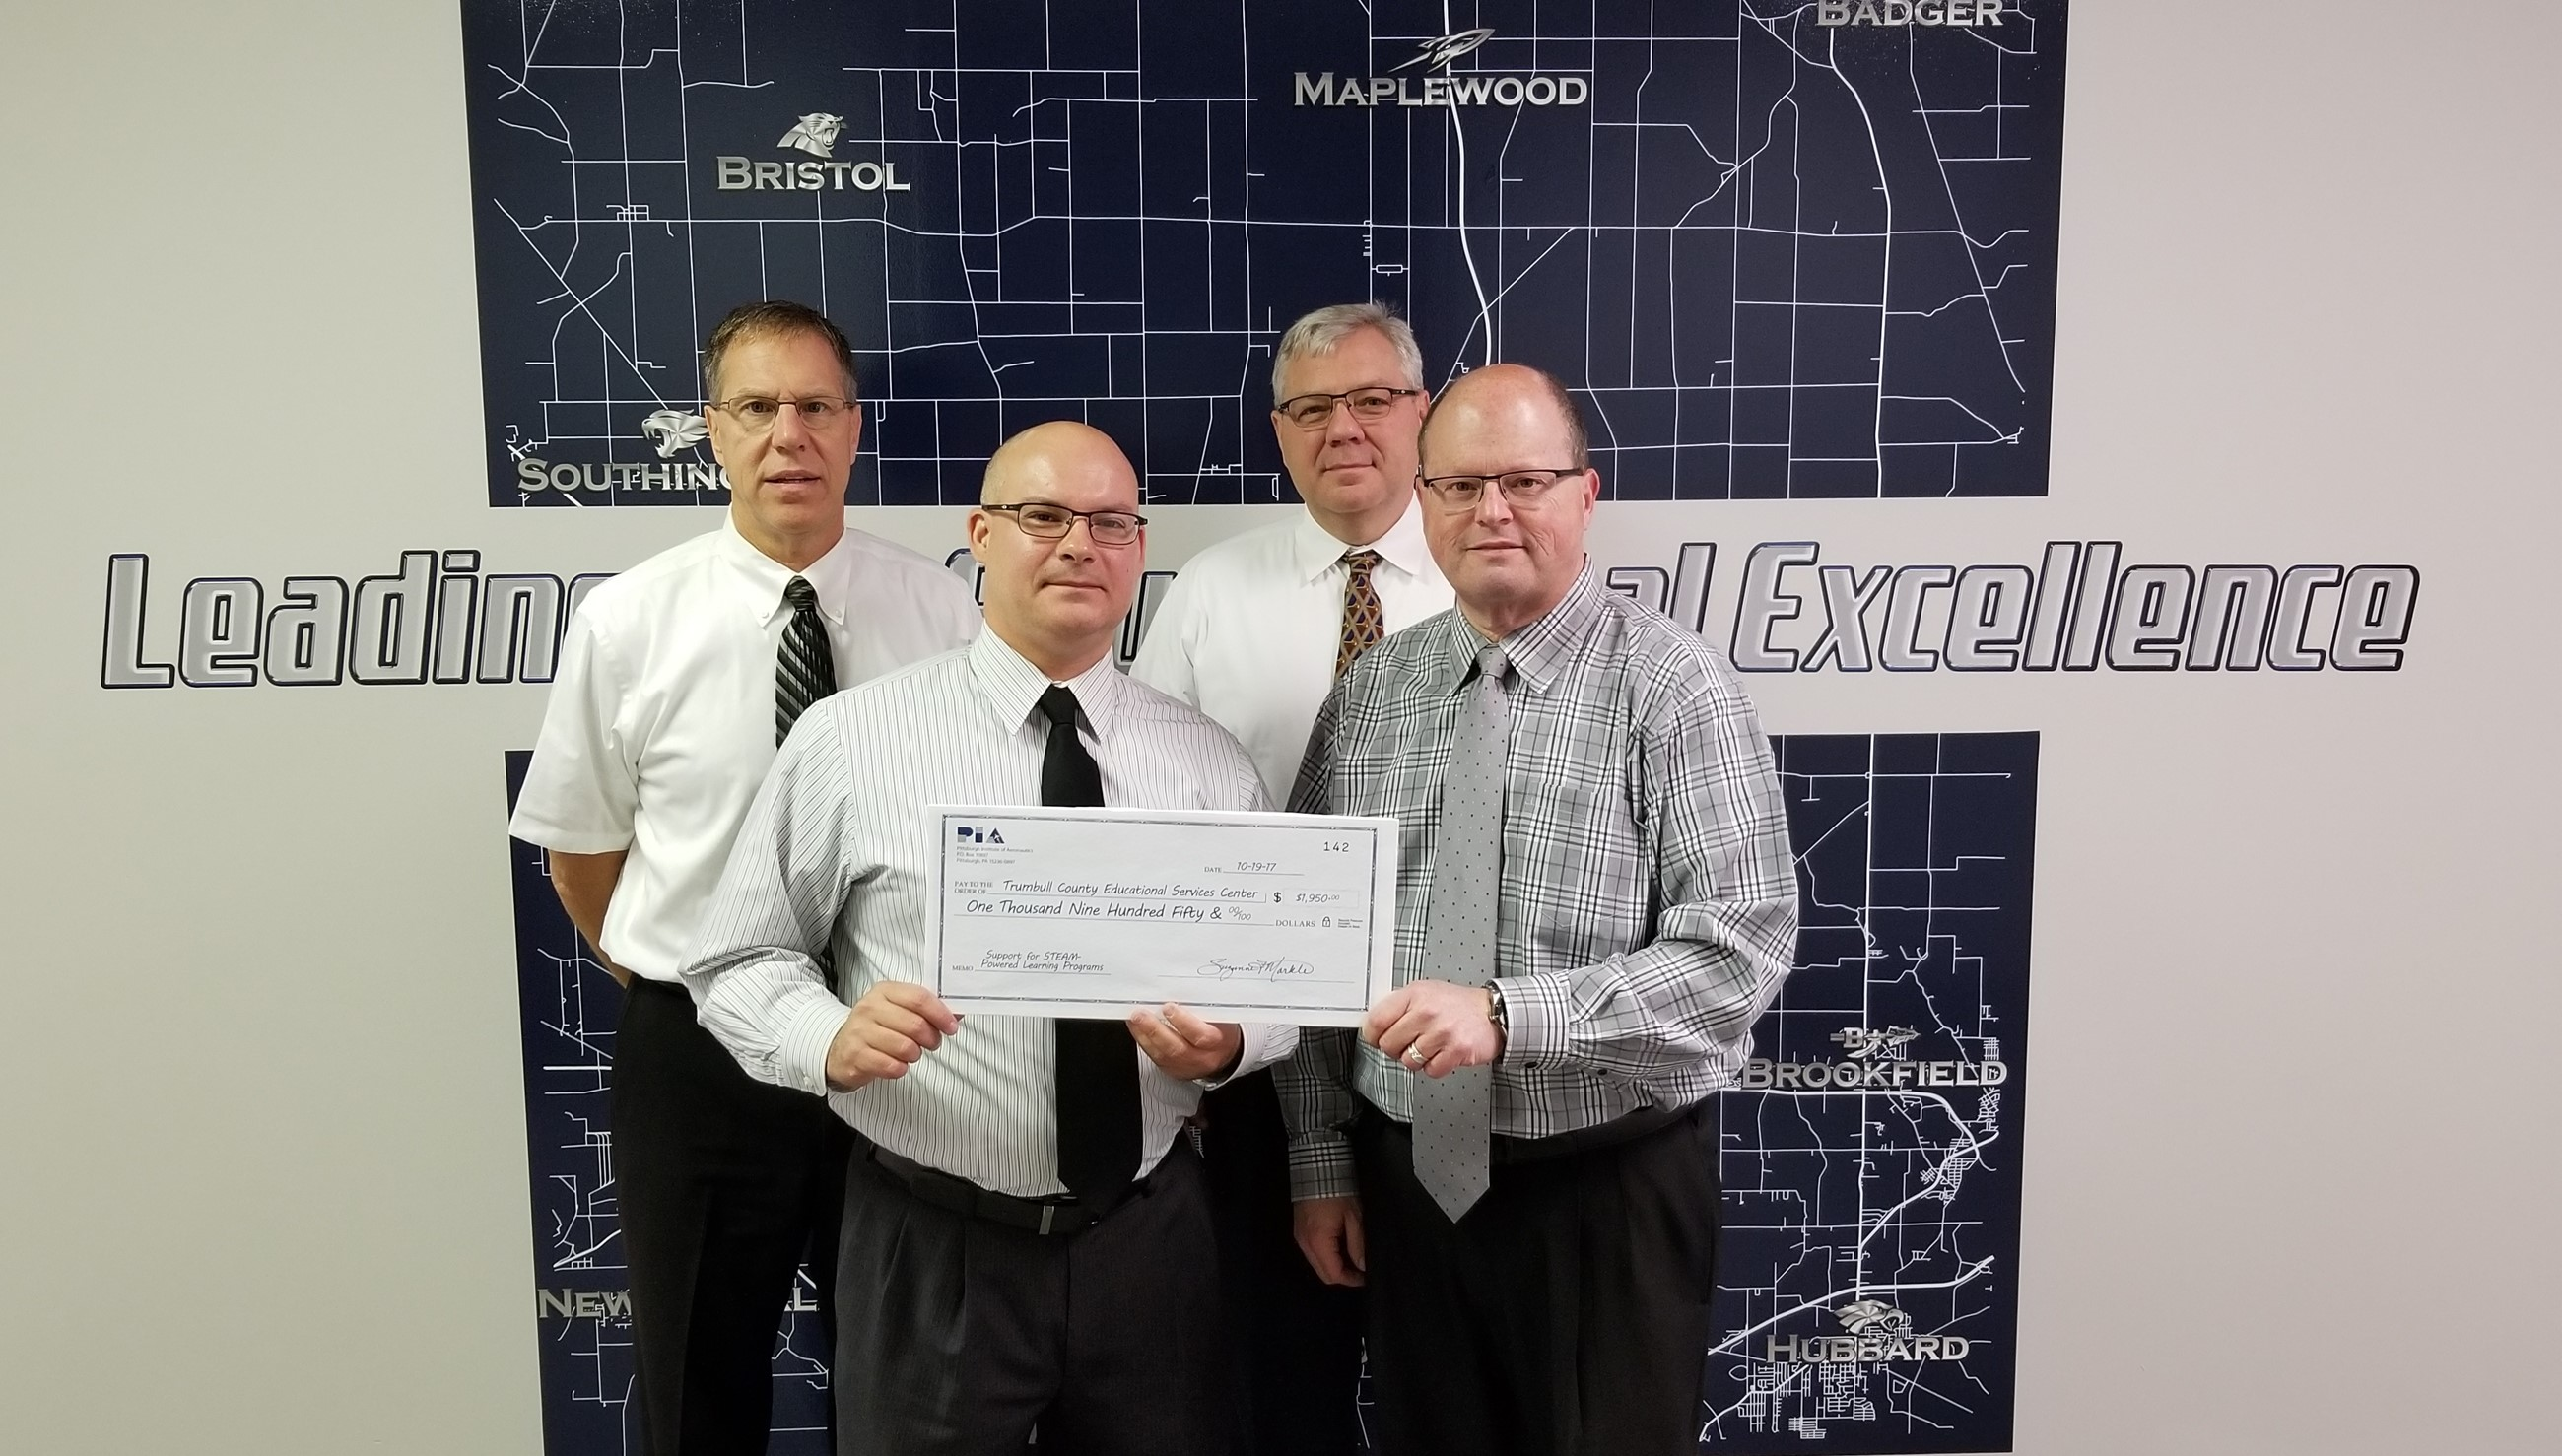 Joseph DeRamo, front left, presented a $1,950 check from the Pittsburgh Institute of Aeronautics to TCESC's STEAM Powered Learning Program. Also pictured are Michael Hanshaw, front right, superintendent, Bryan O'Hara, back left, C&I director, and Robert Marino, back right, assistant superintendent.